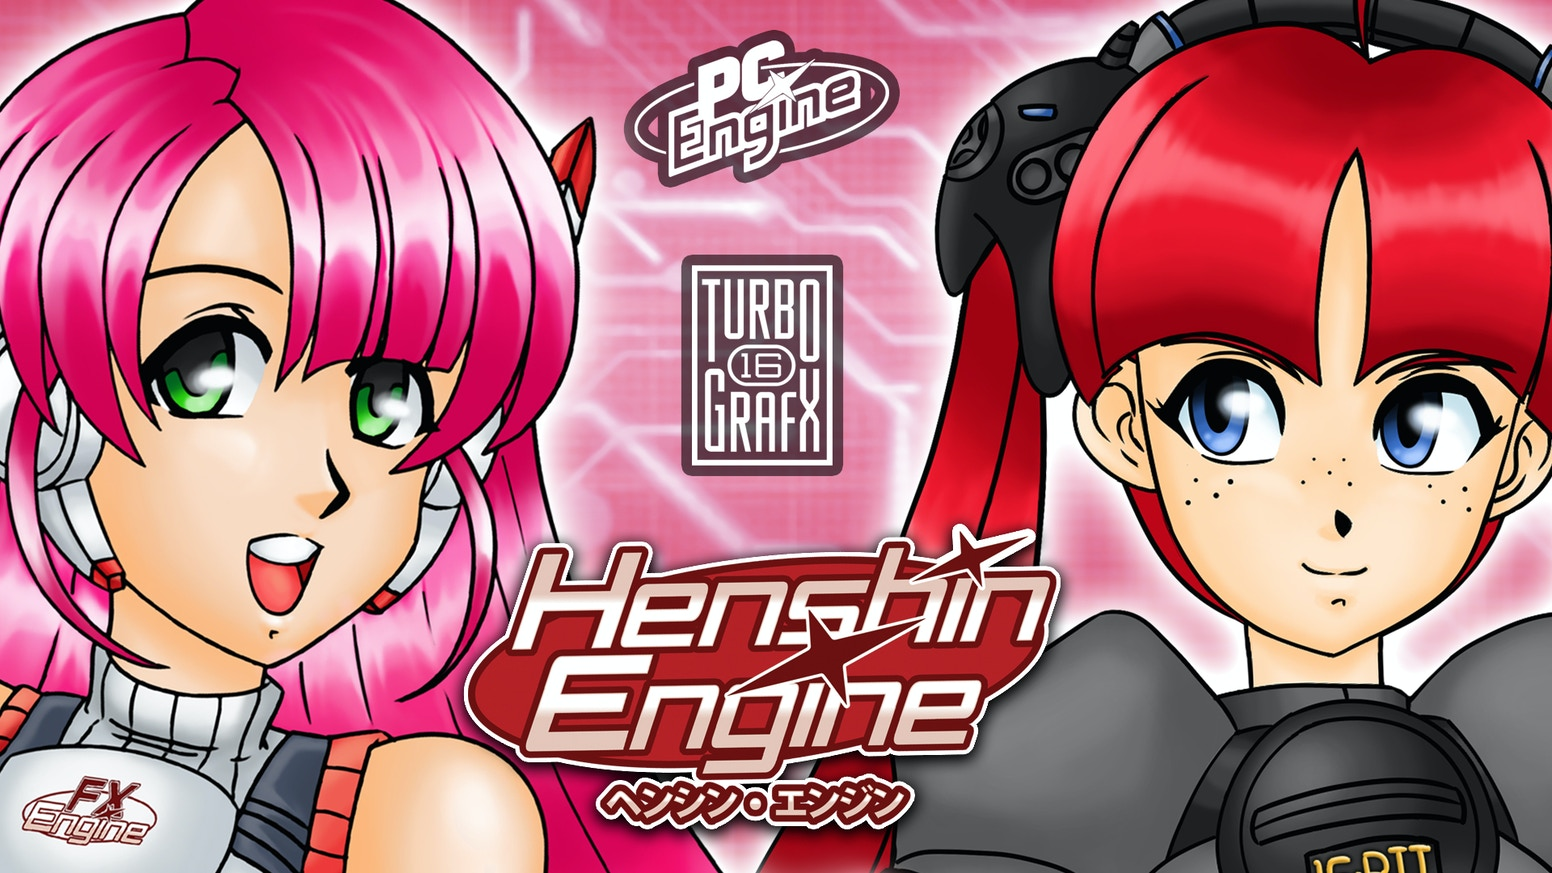 Henshin Engine is a new 2D action platformer developed for real 16-bit hardware from the ground up based on the world of video games!